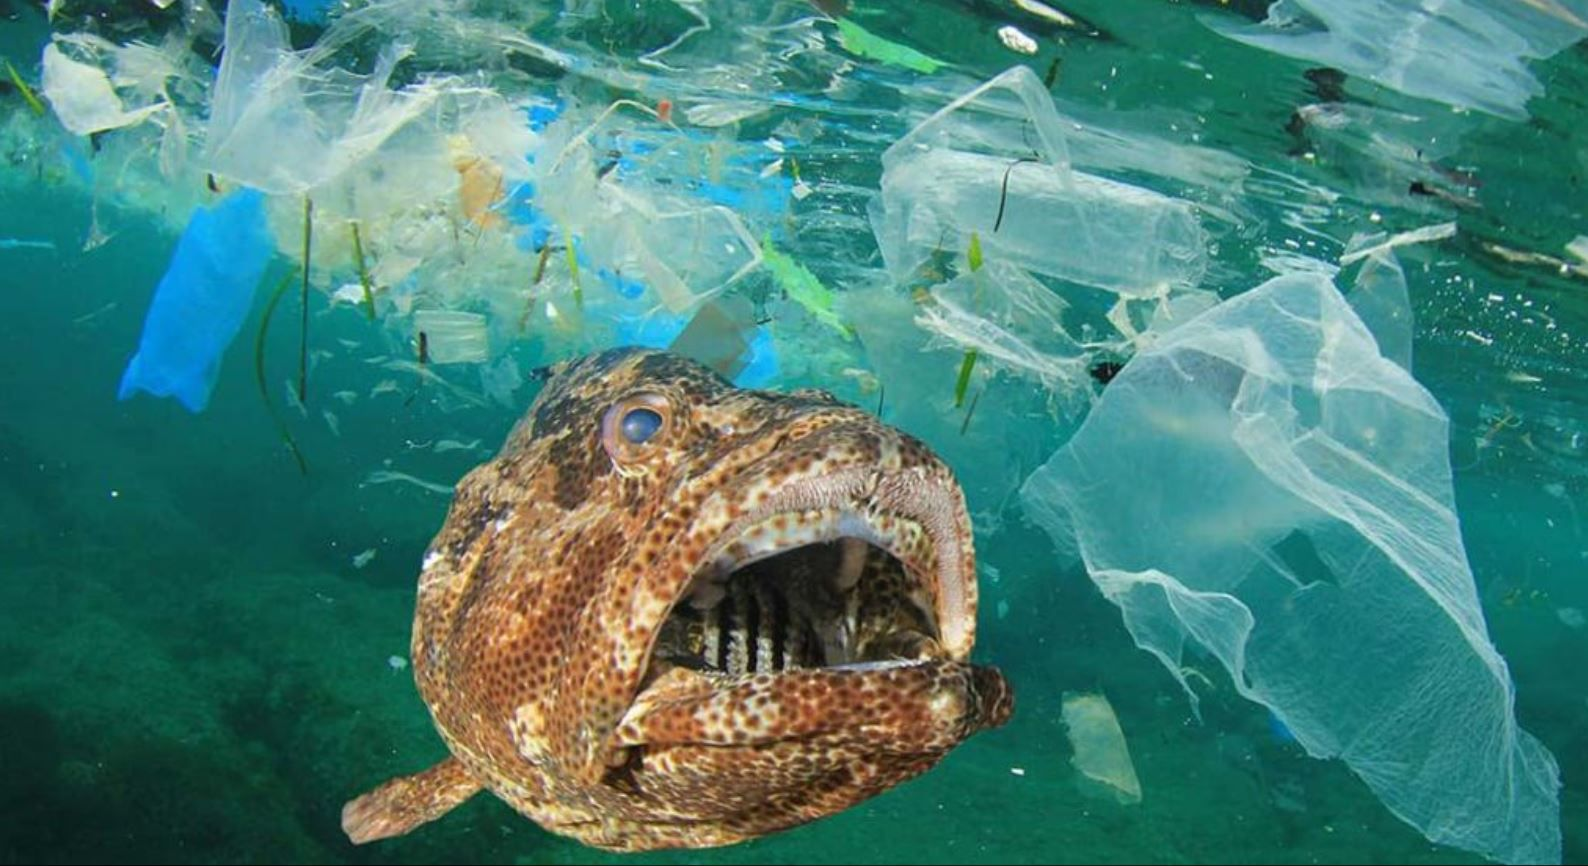 The seabed littered with microplastics, according to a new study